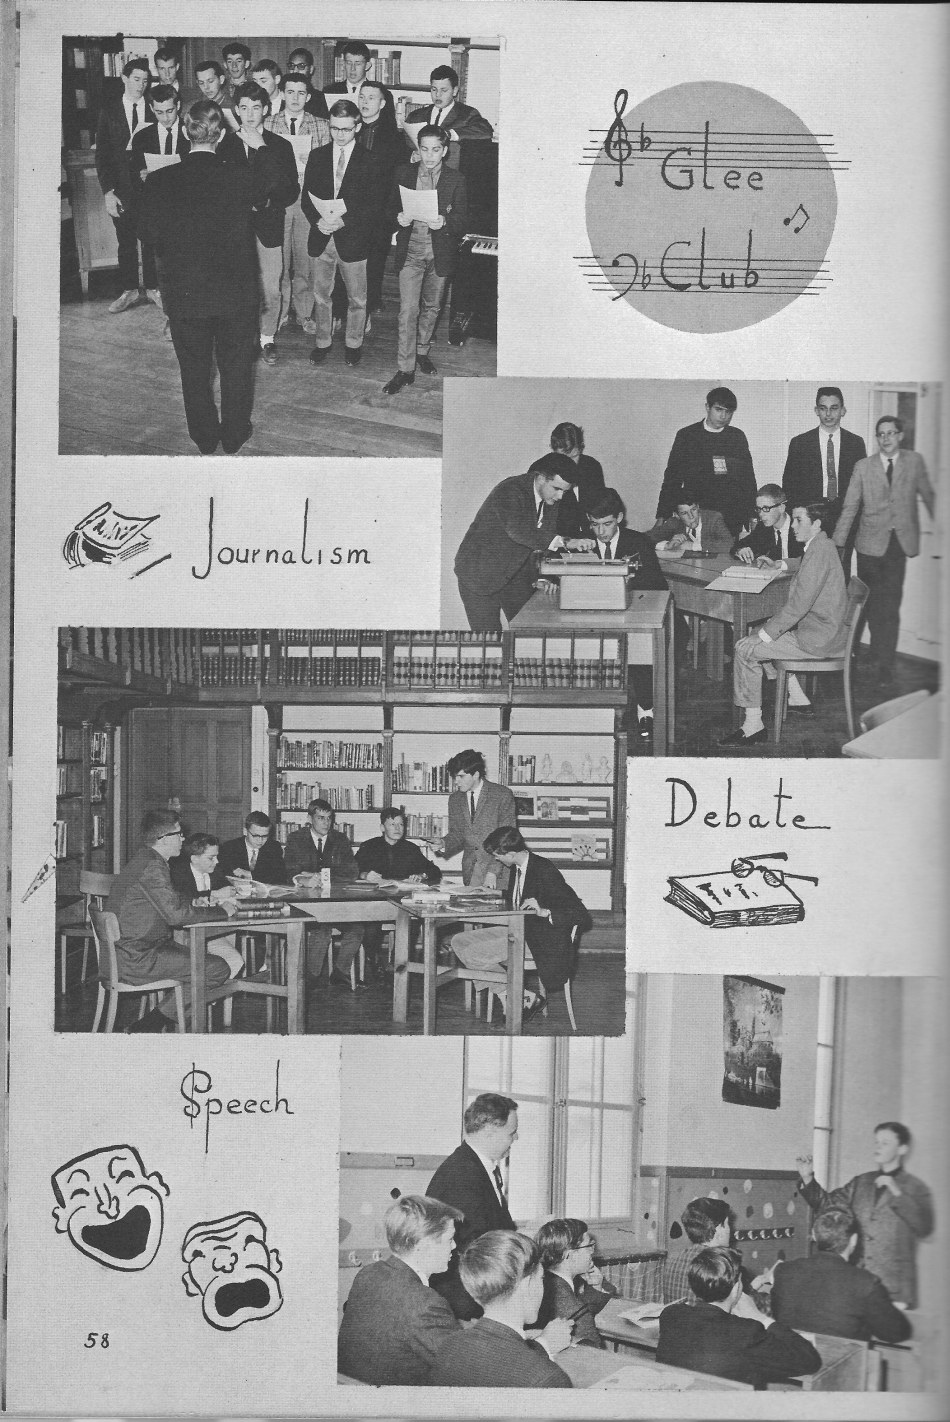 Glee Debate Speech Clubs  for  Villa Saint Jean International School  1964 Yearbook Le Chamois